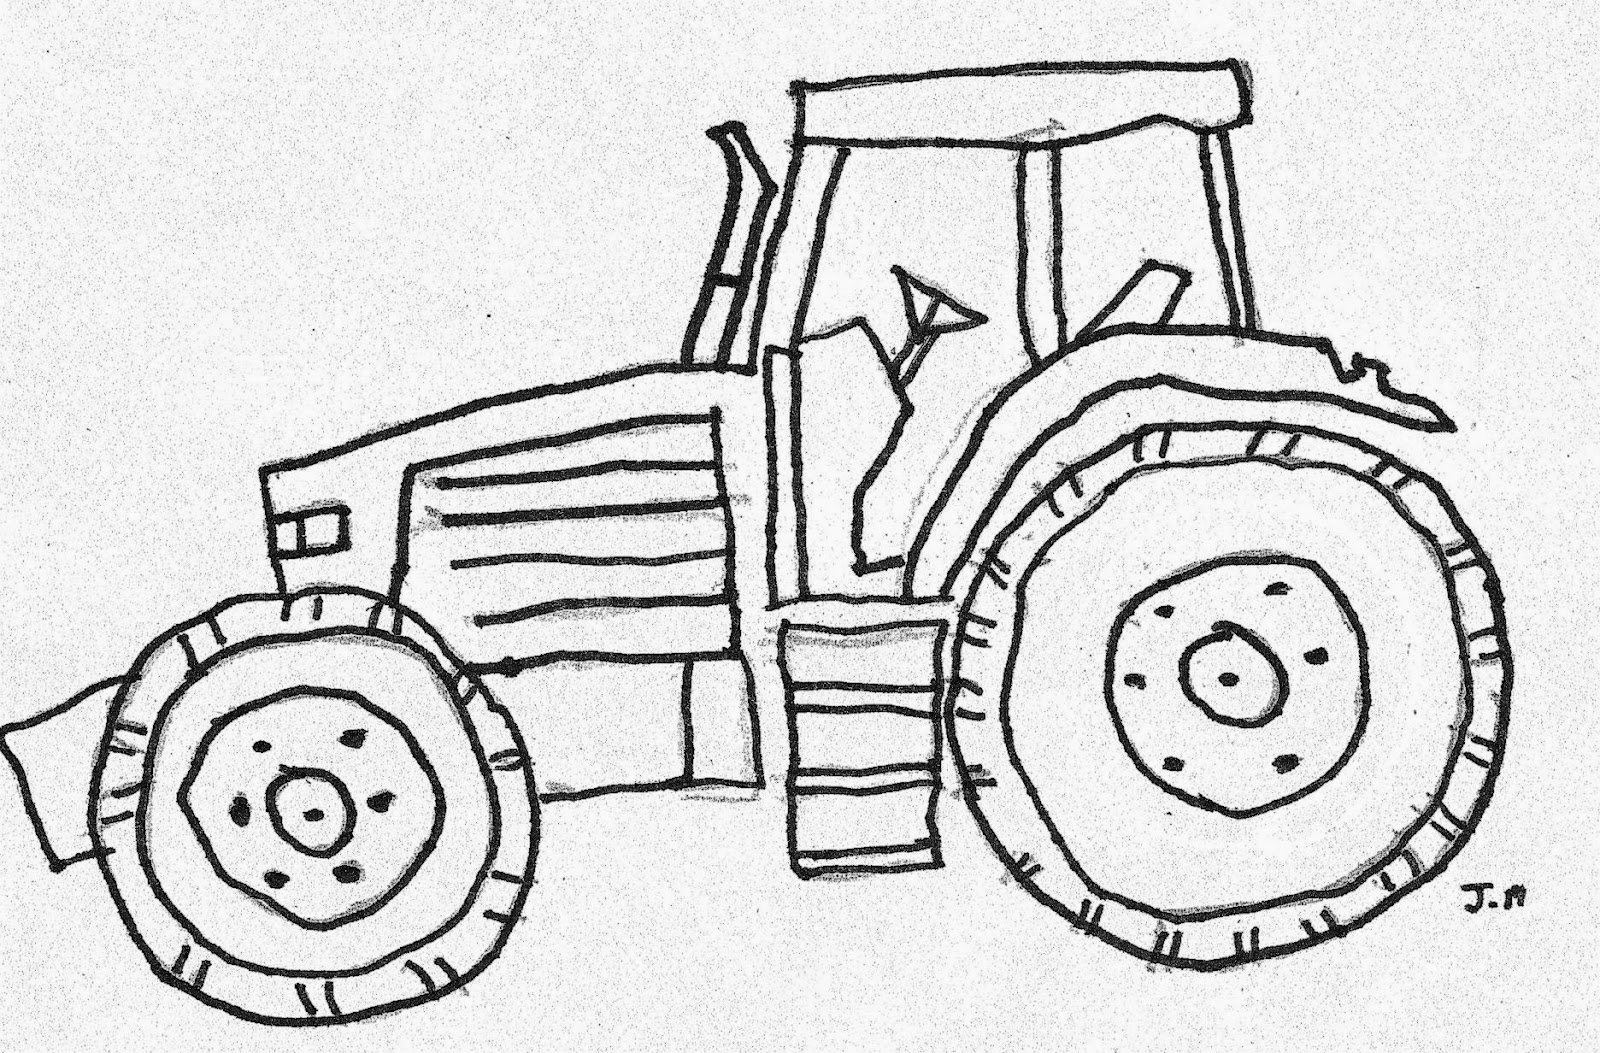 Clip Art Coloring Page Tractor tractor coloring pages eassume com big boss to print free tractors farm